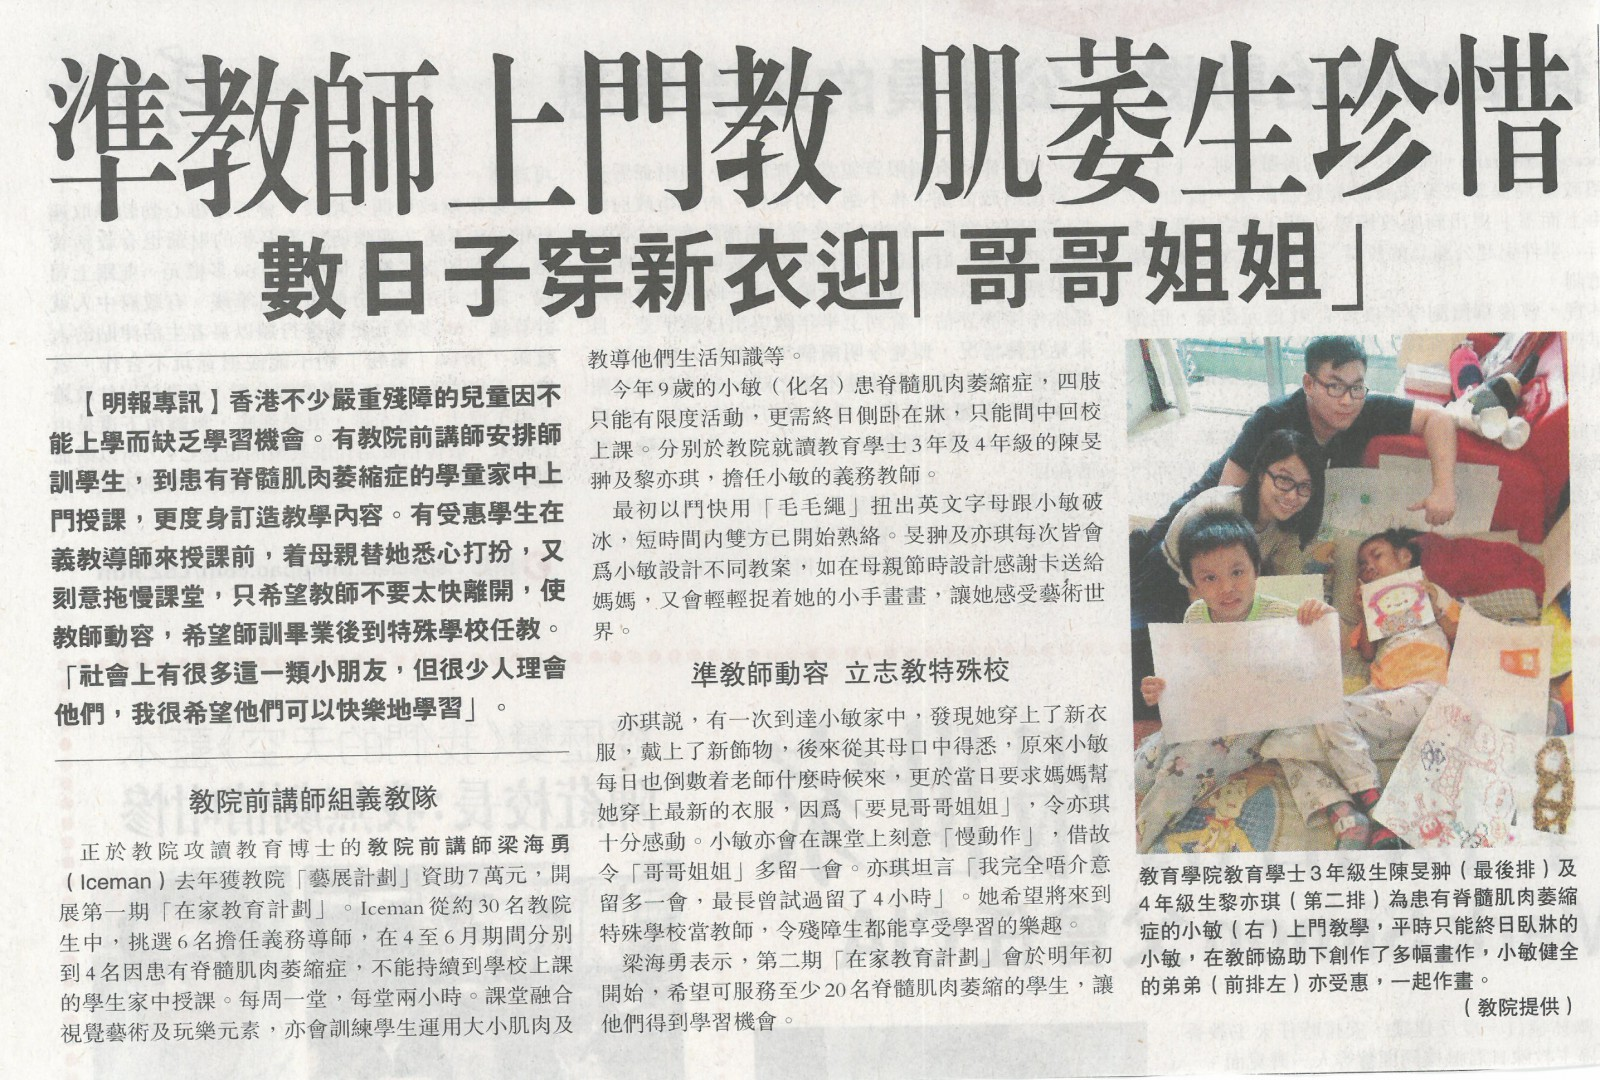 Home Project Coverage (2)_Mingpao 20140805 A15